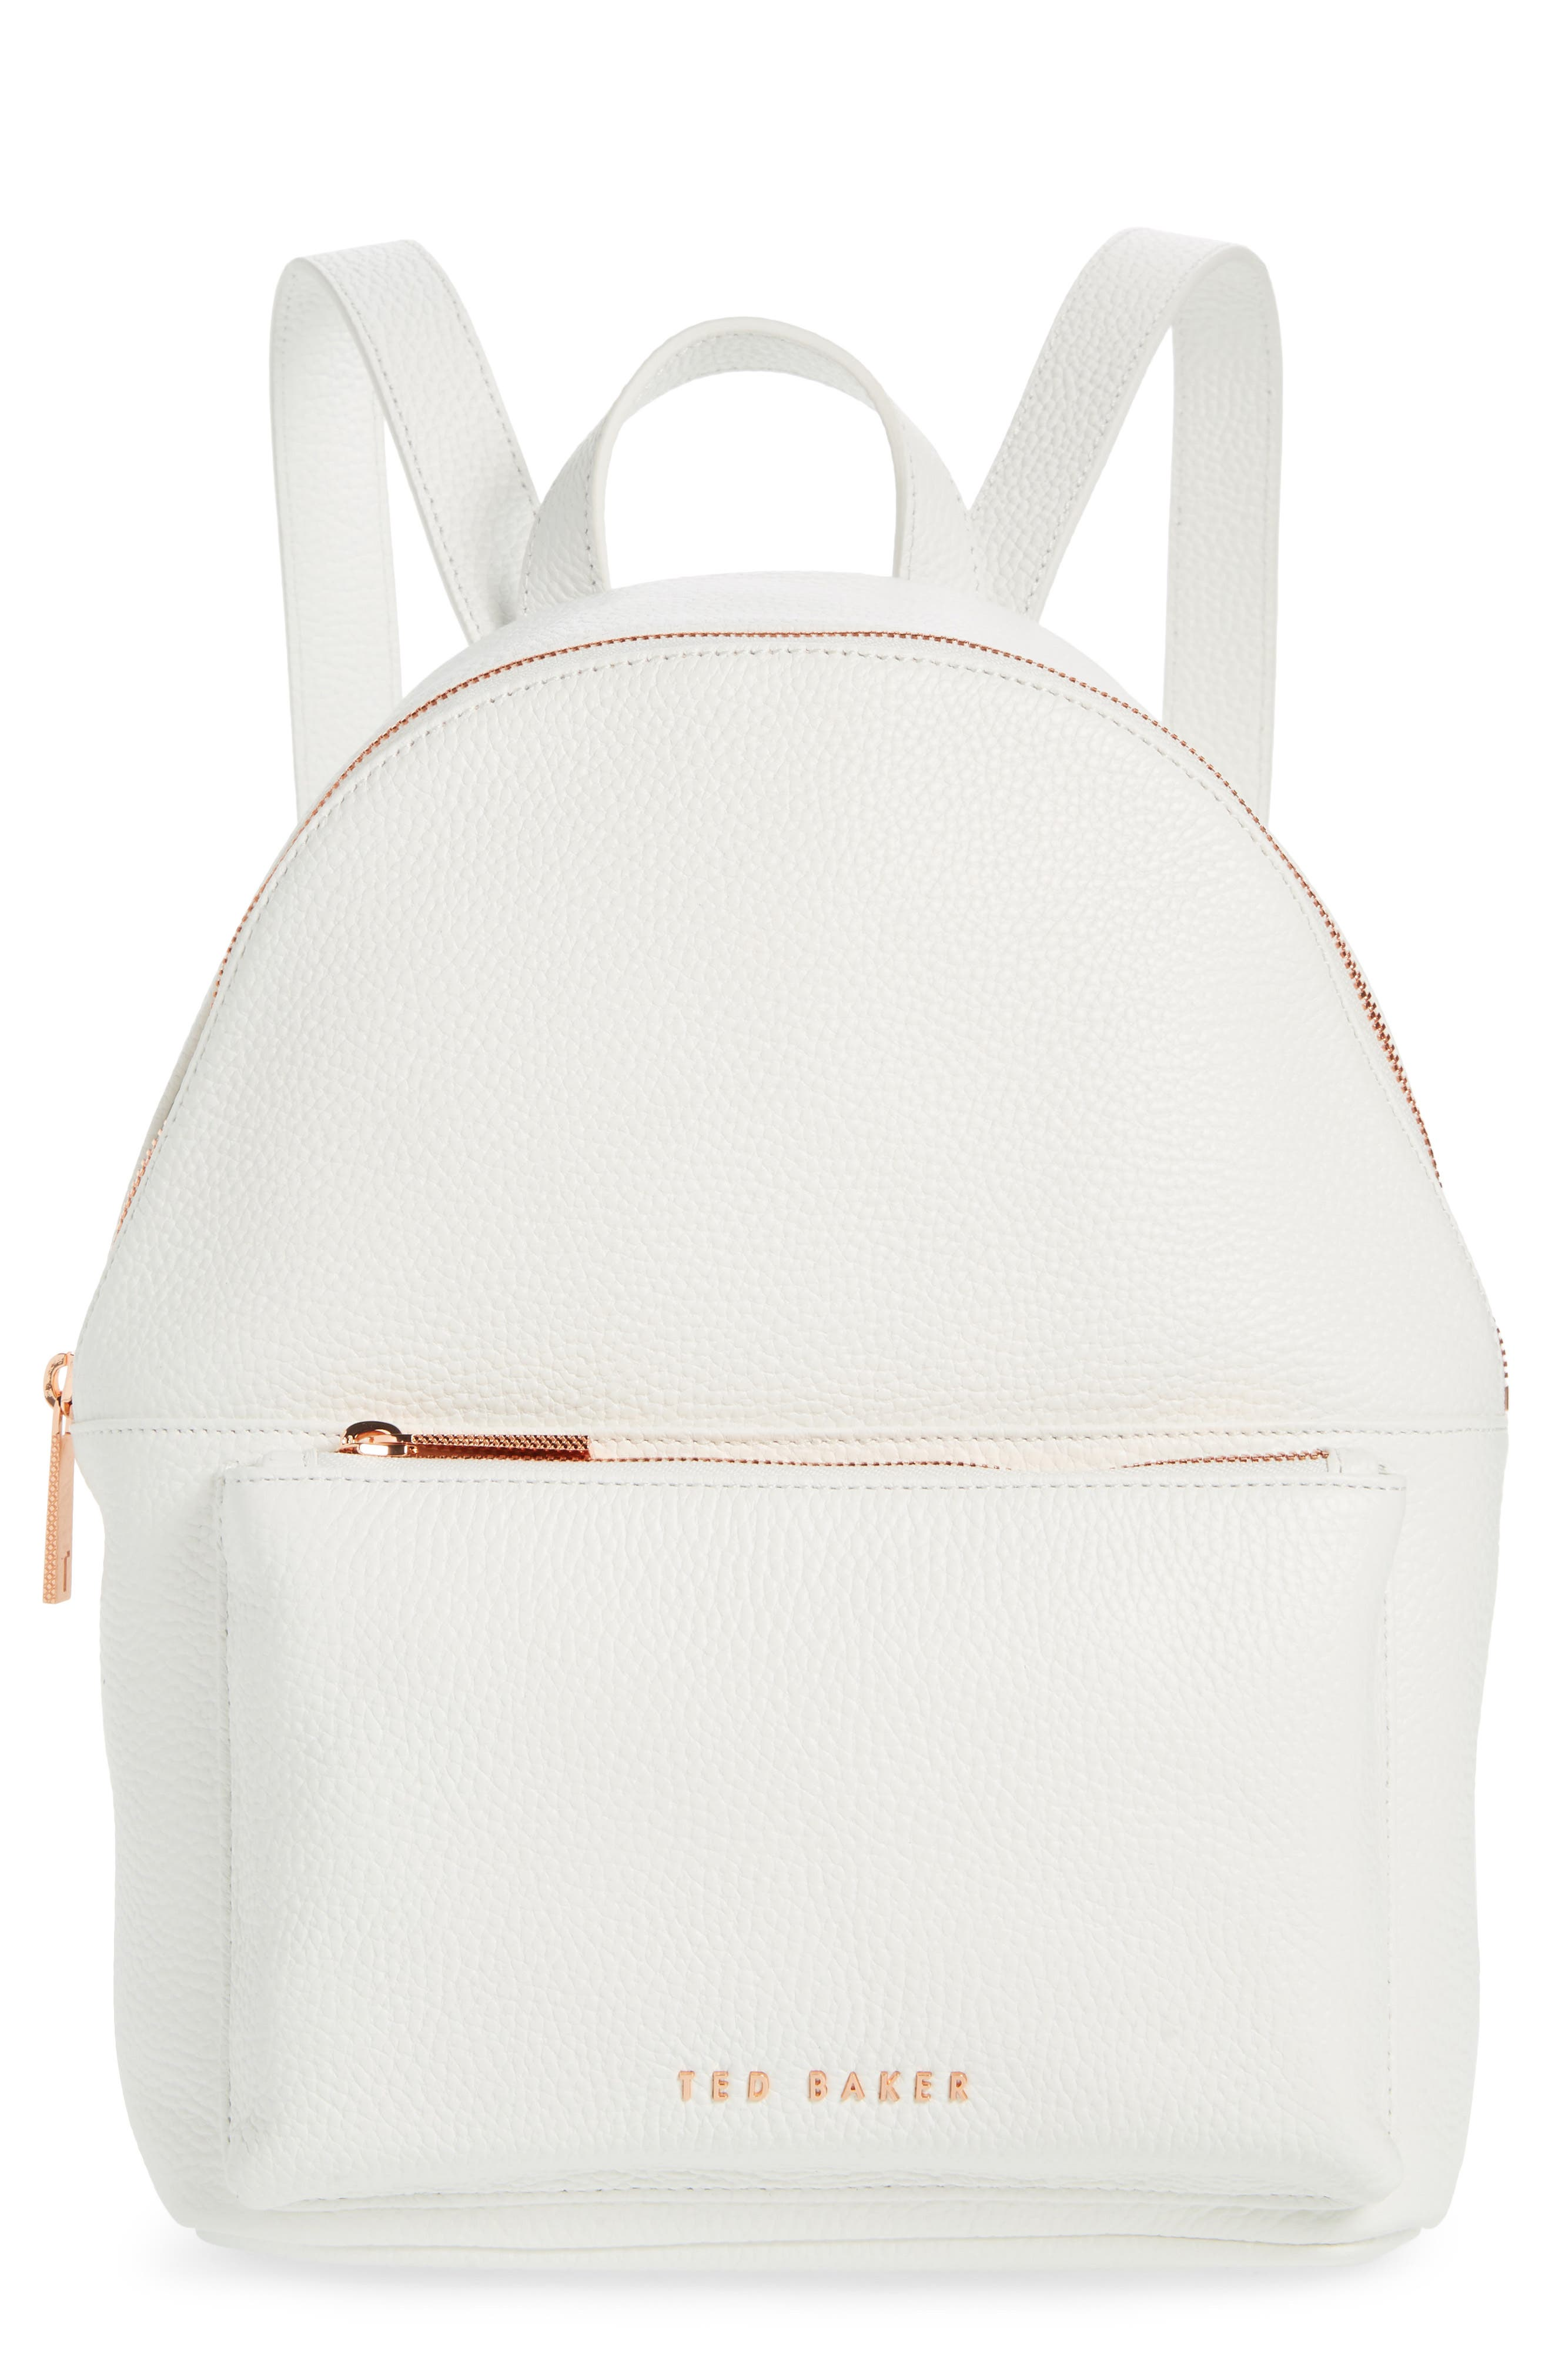 Pearen Leather Backpack,                             Main thumbnail 1, color,                             White